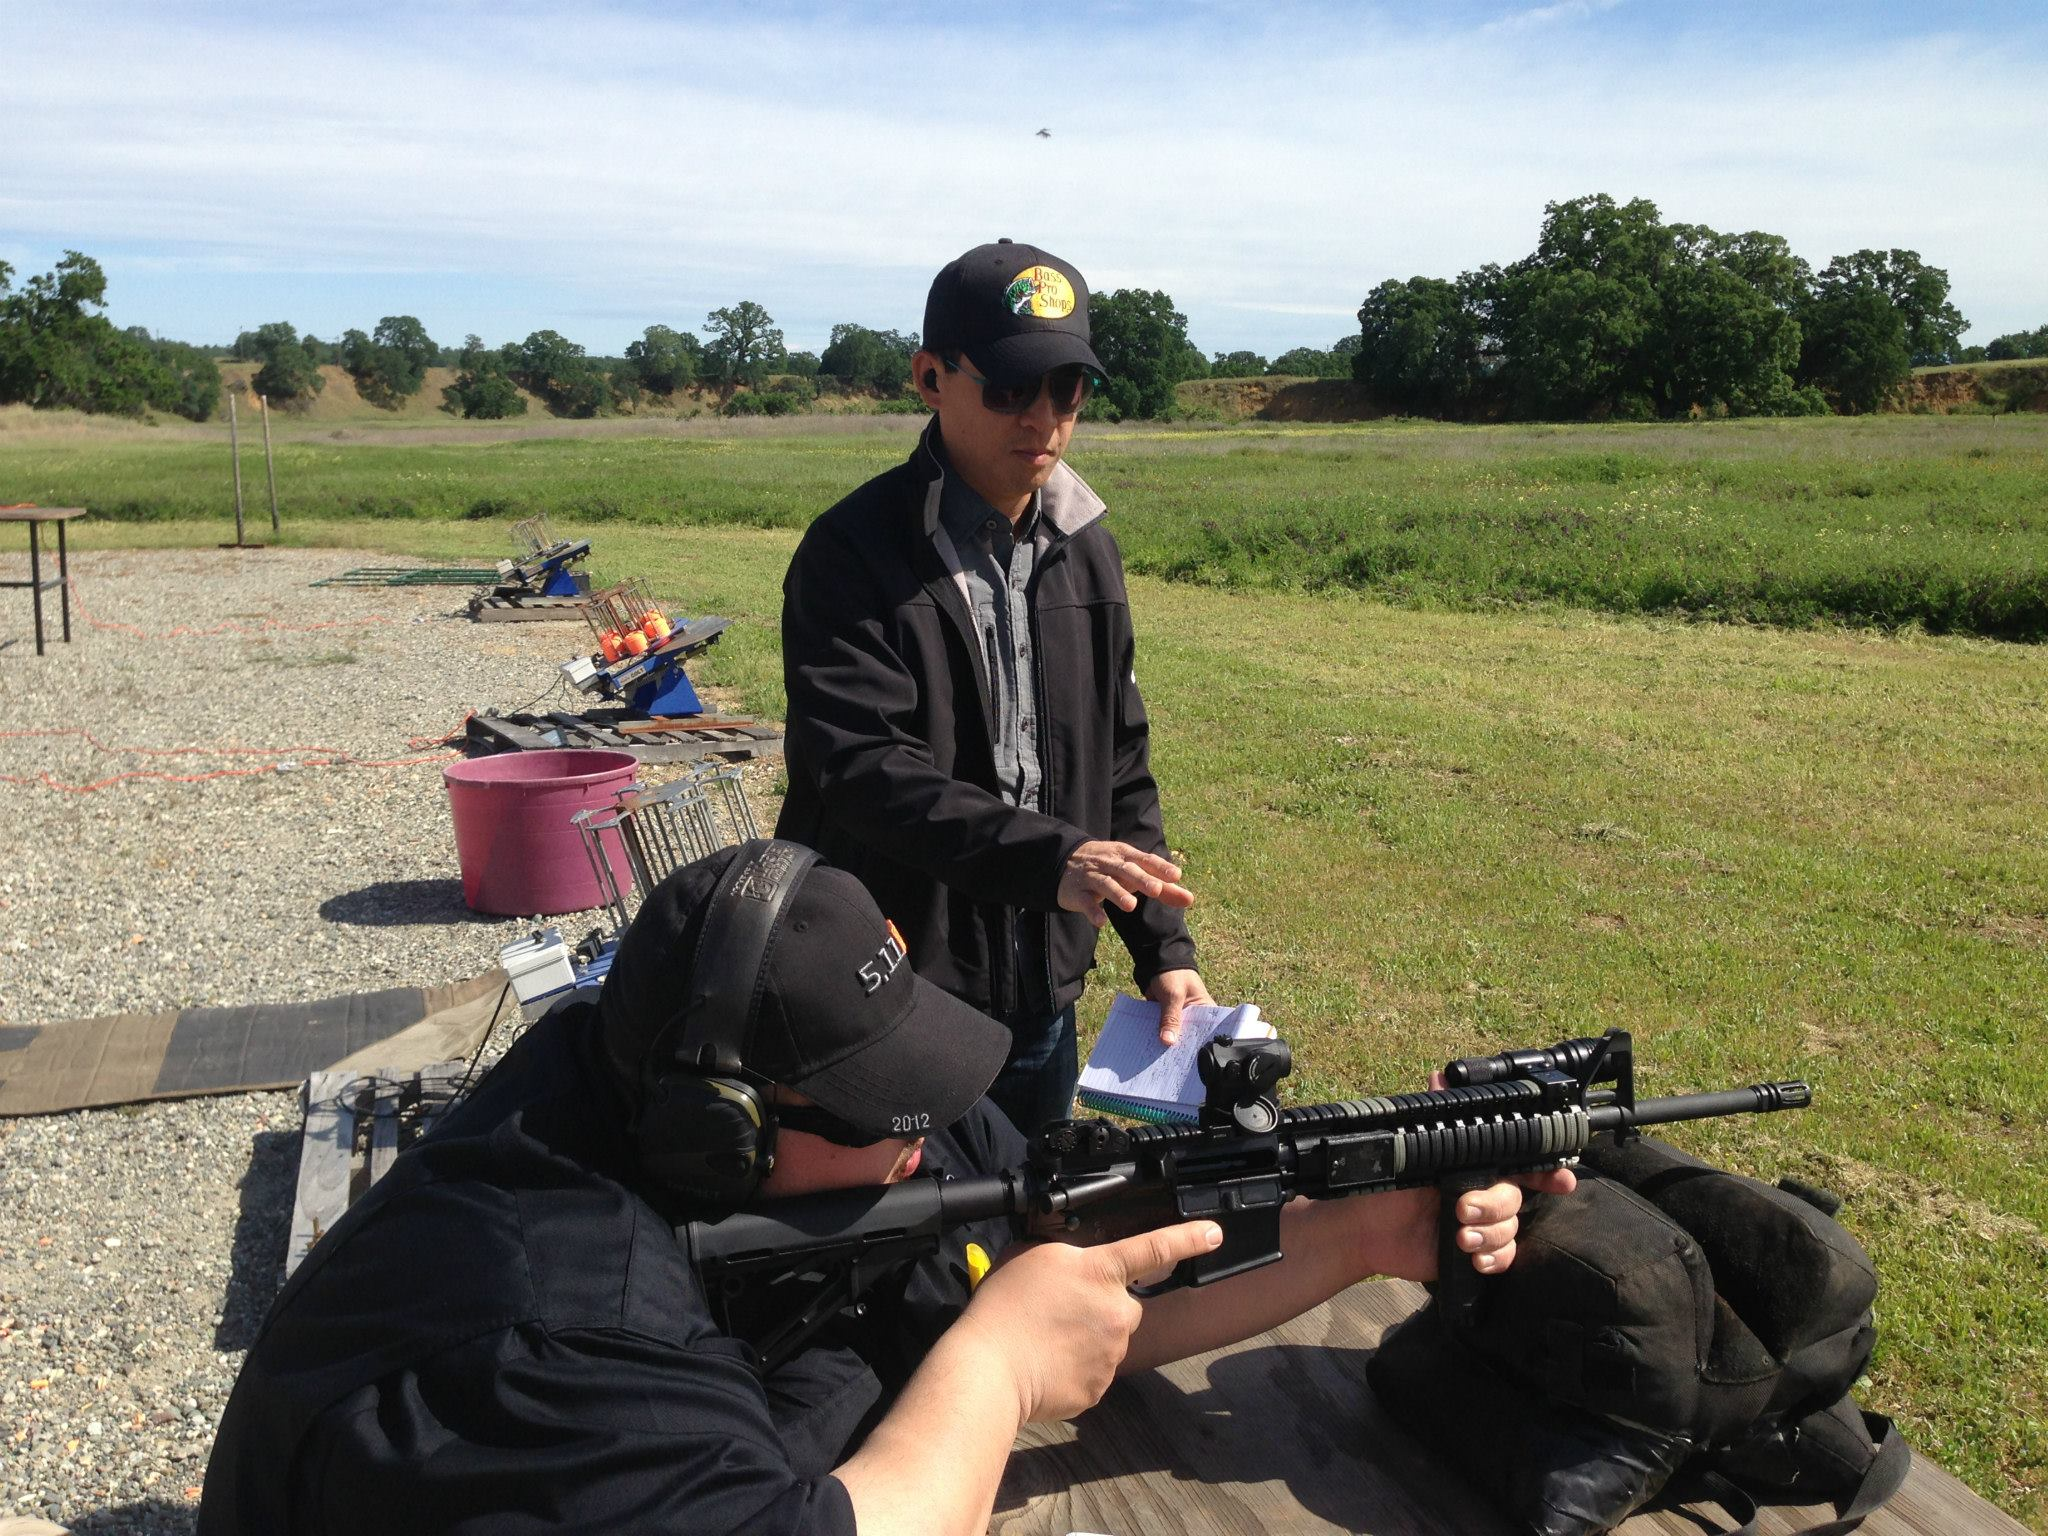 Benchrest Shooting Technique: REVIEW: The NRA Instructor Certification Program